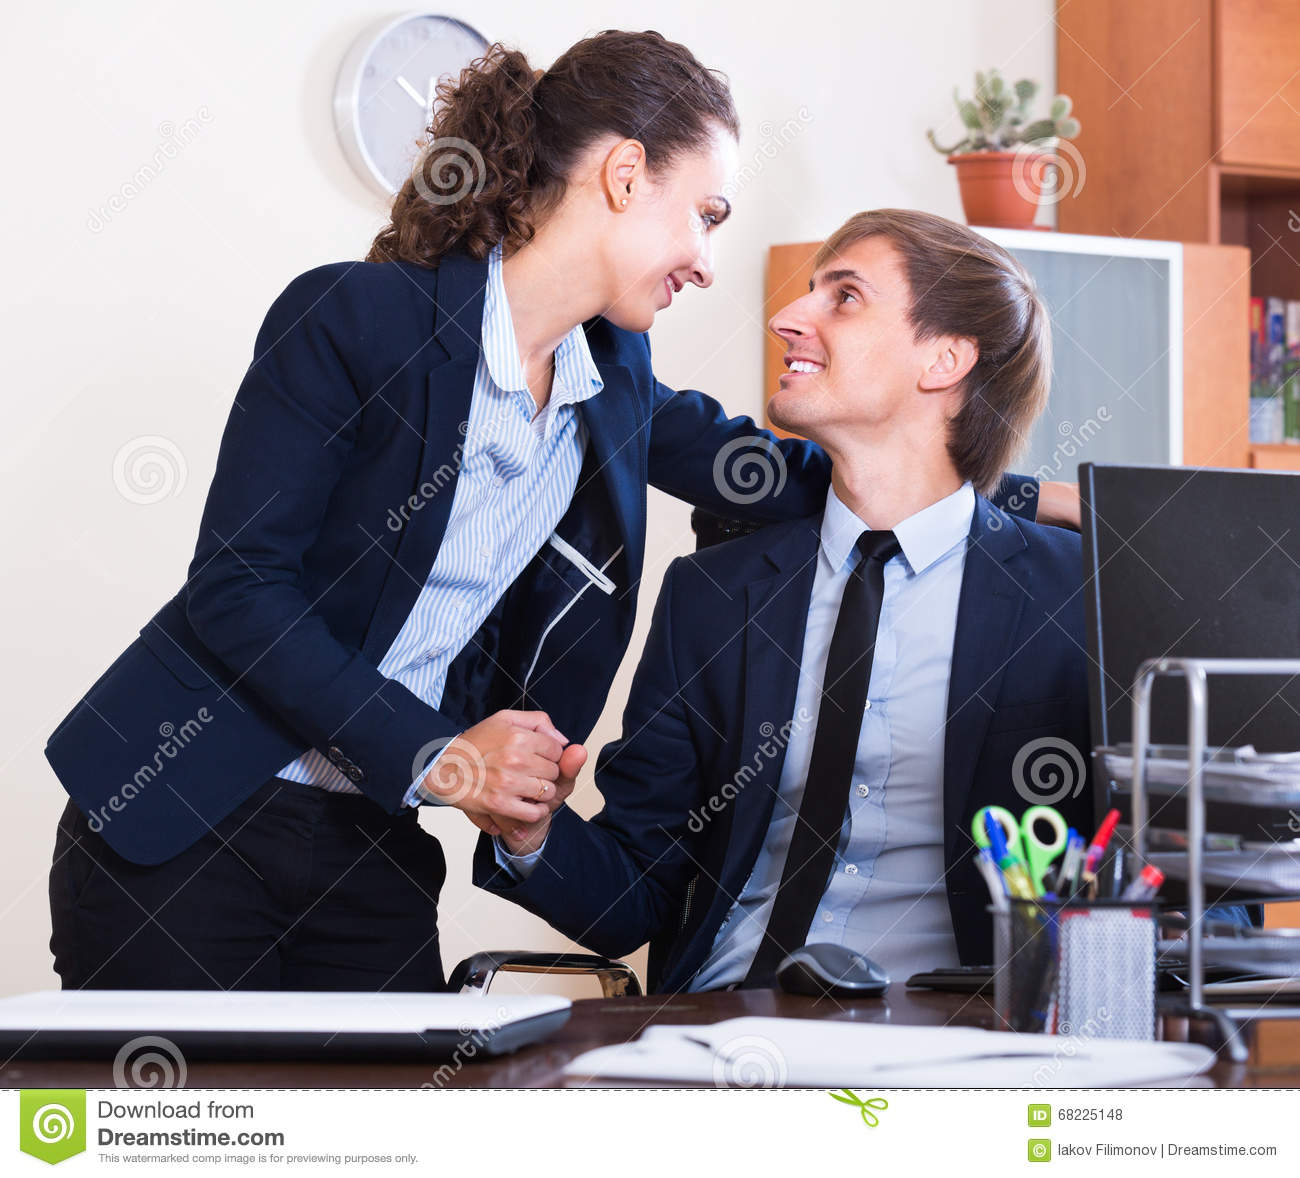 Playful Flirting Between Team Managers At Work Stock Photo ...